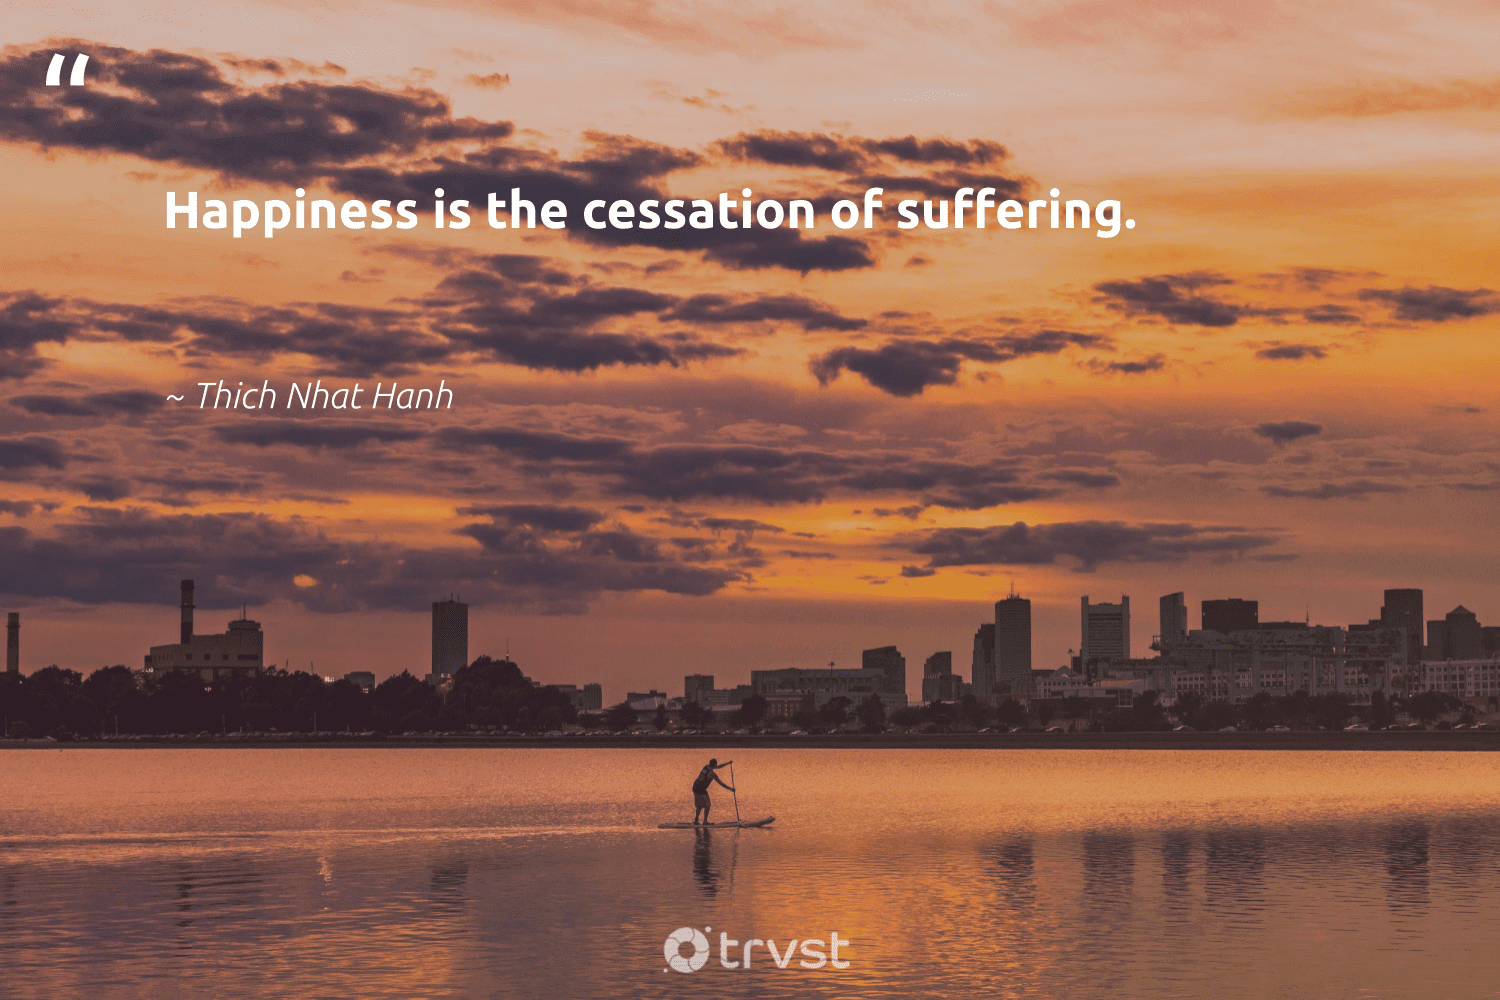 """""""Happiness is the cessation of suffering.""""  - Thich Nhat Hanh #trvst #quotes #happiness #nevergiveup #dosomething #mindset #takeaction #togetherwecan #gogreen #changemakers #ecoconscious #health"""